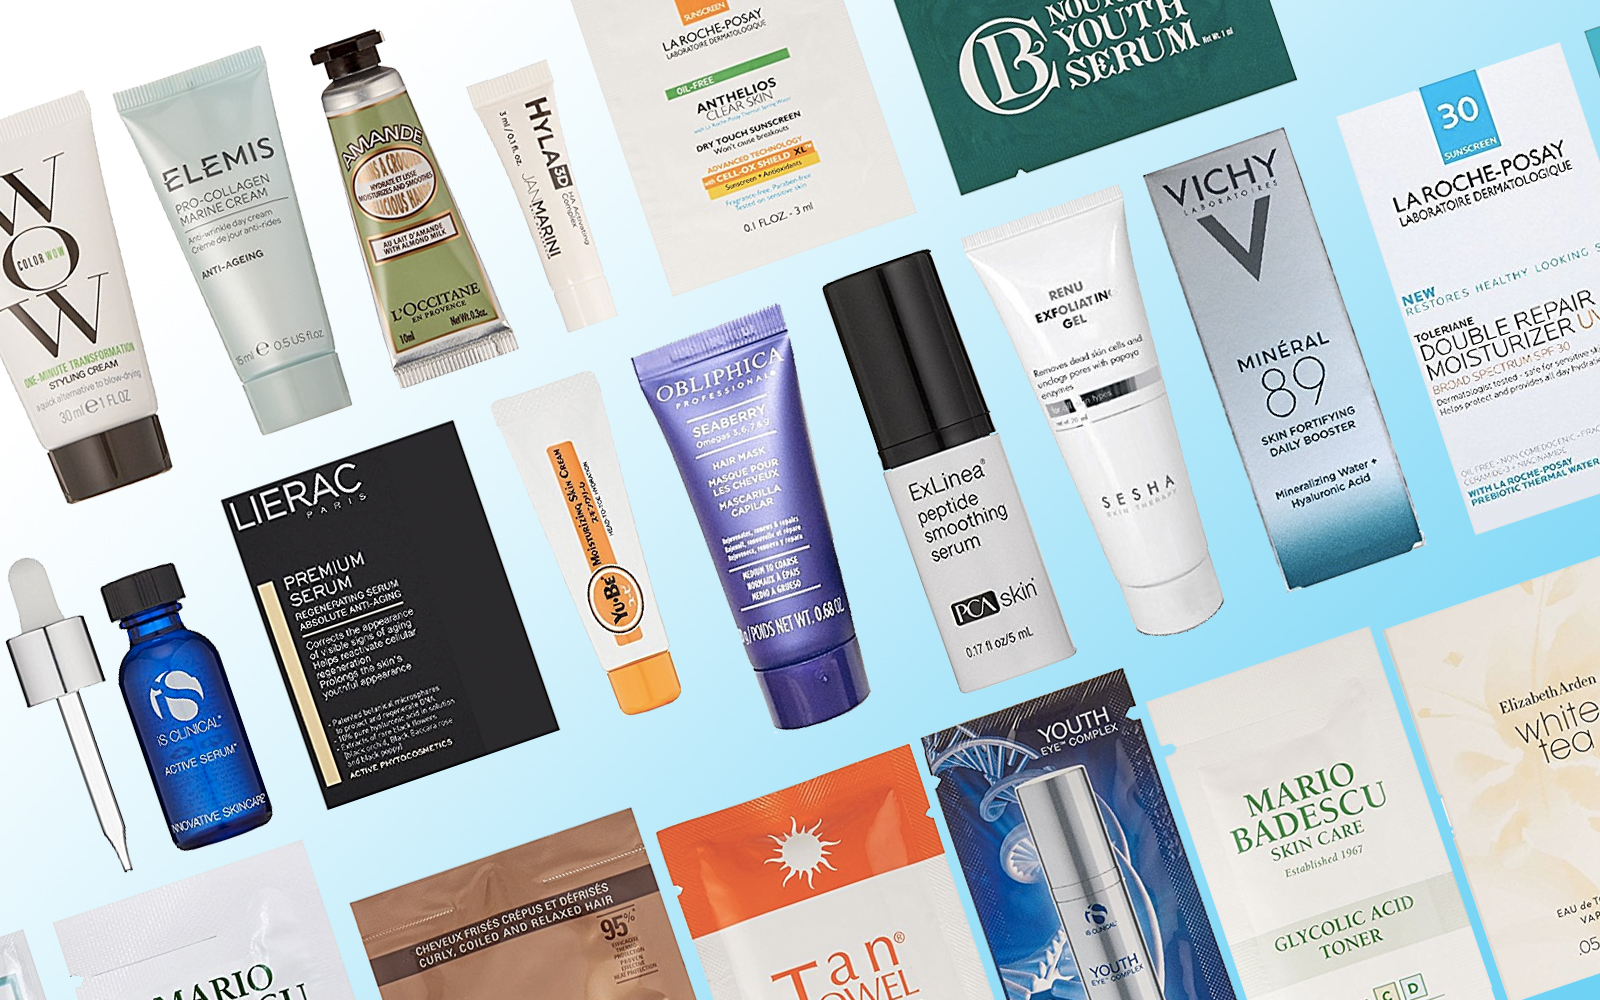 Amazon's Travel-sized Beauty Samples Are Basically Free